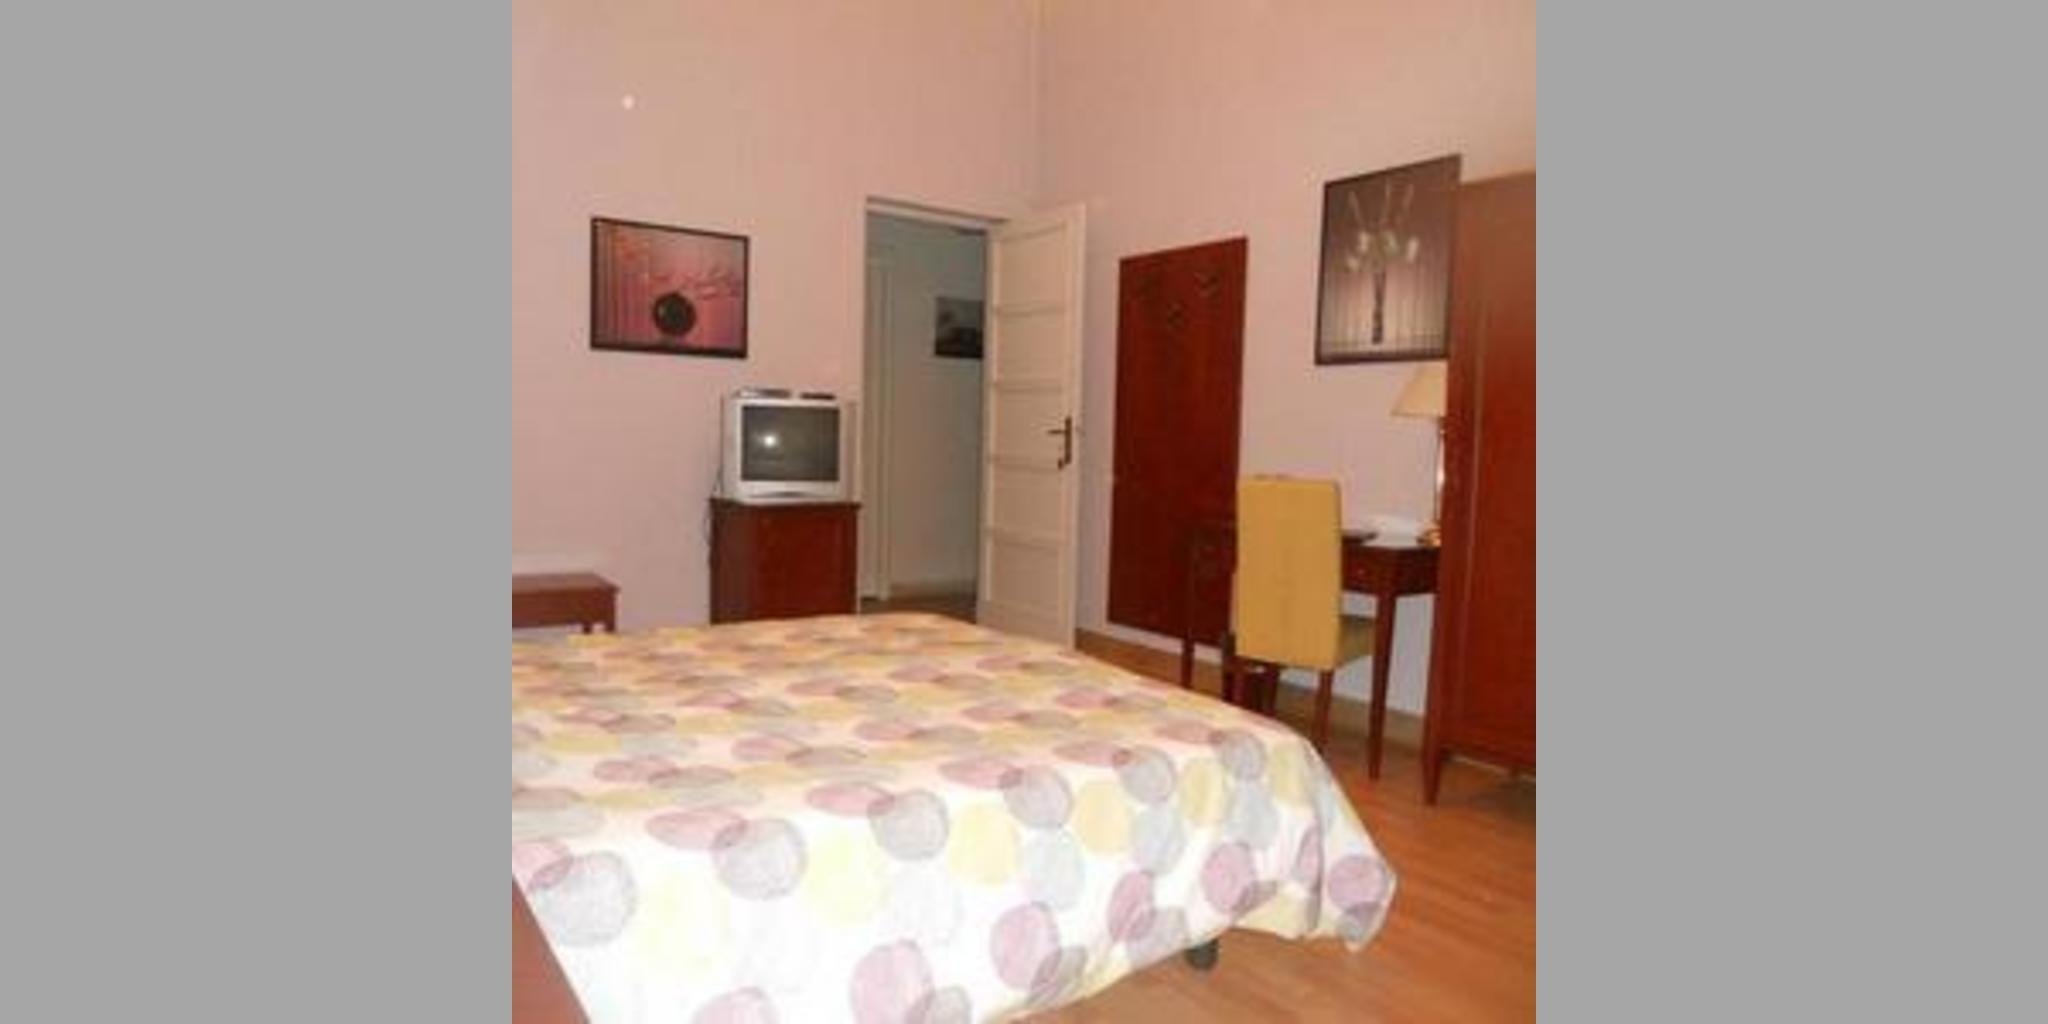 Bed & Breakfast Catania - B&B Catania Centro